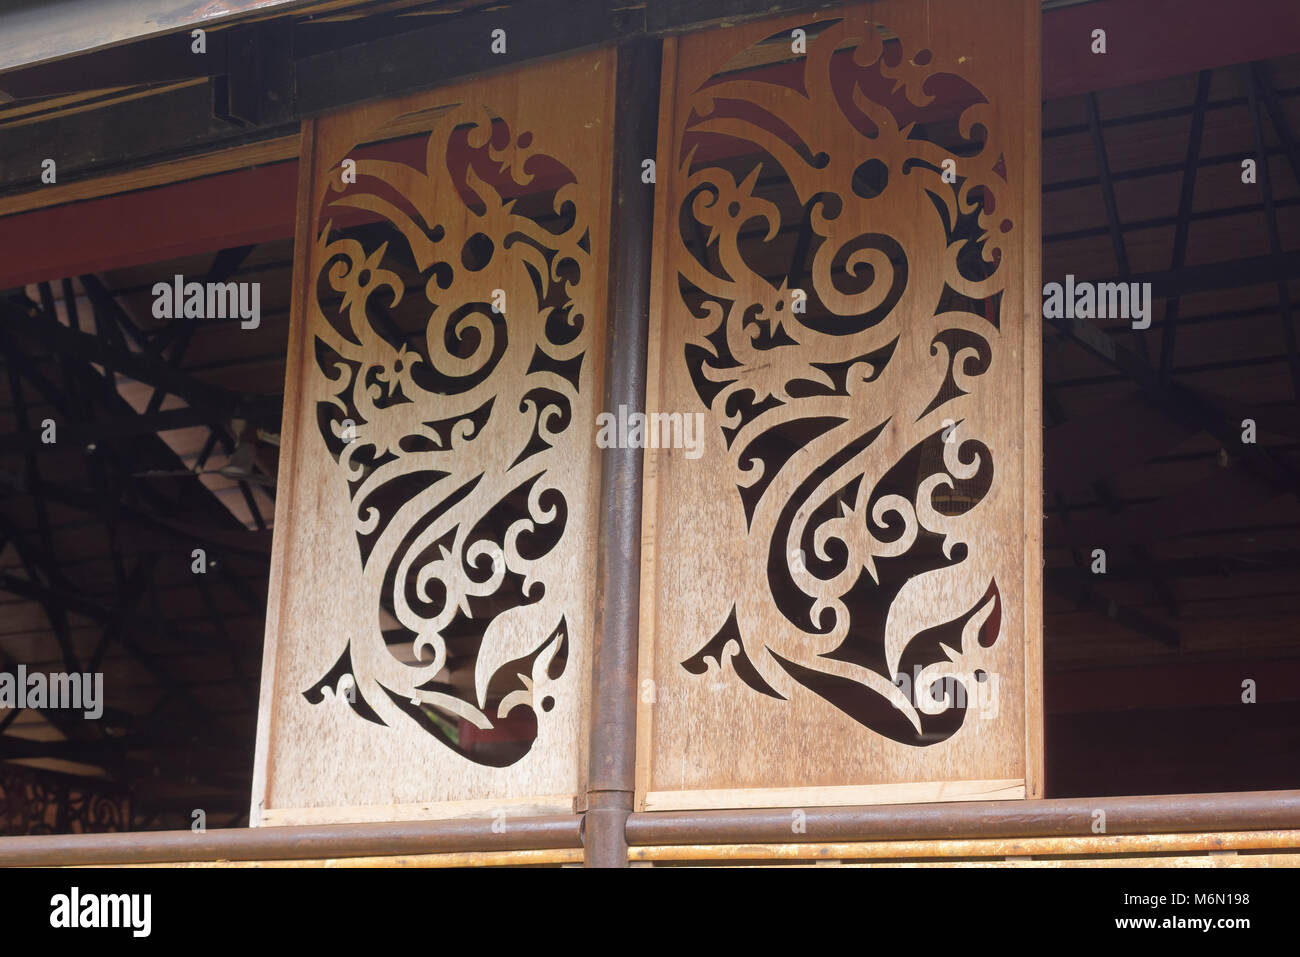 Traditional designs carved in wood sarawak cultural village stock